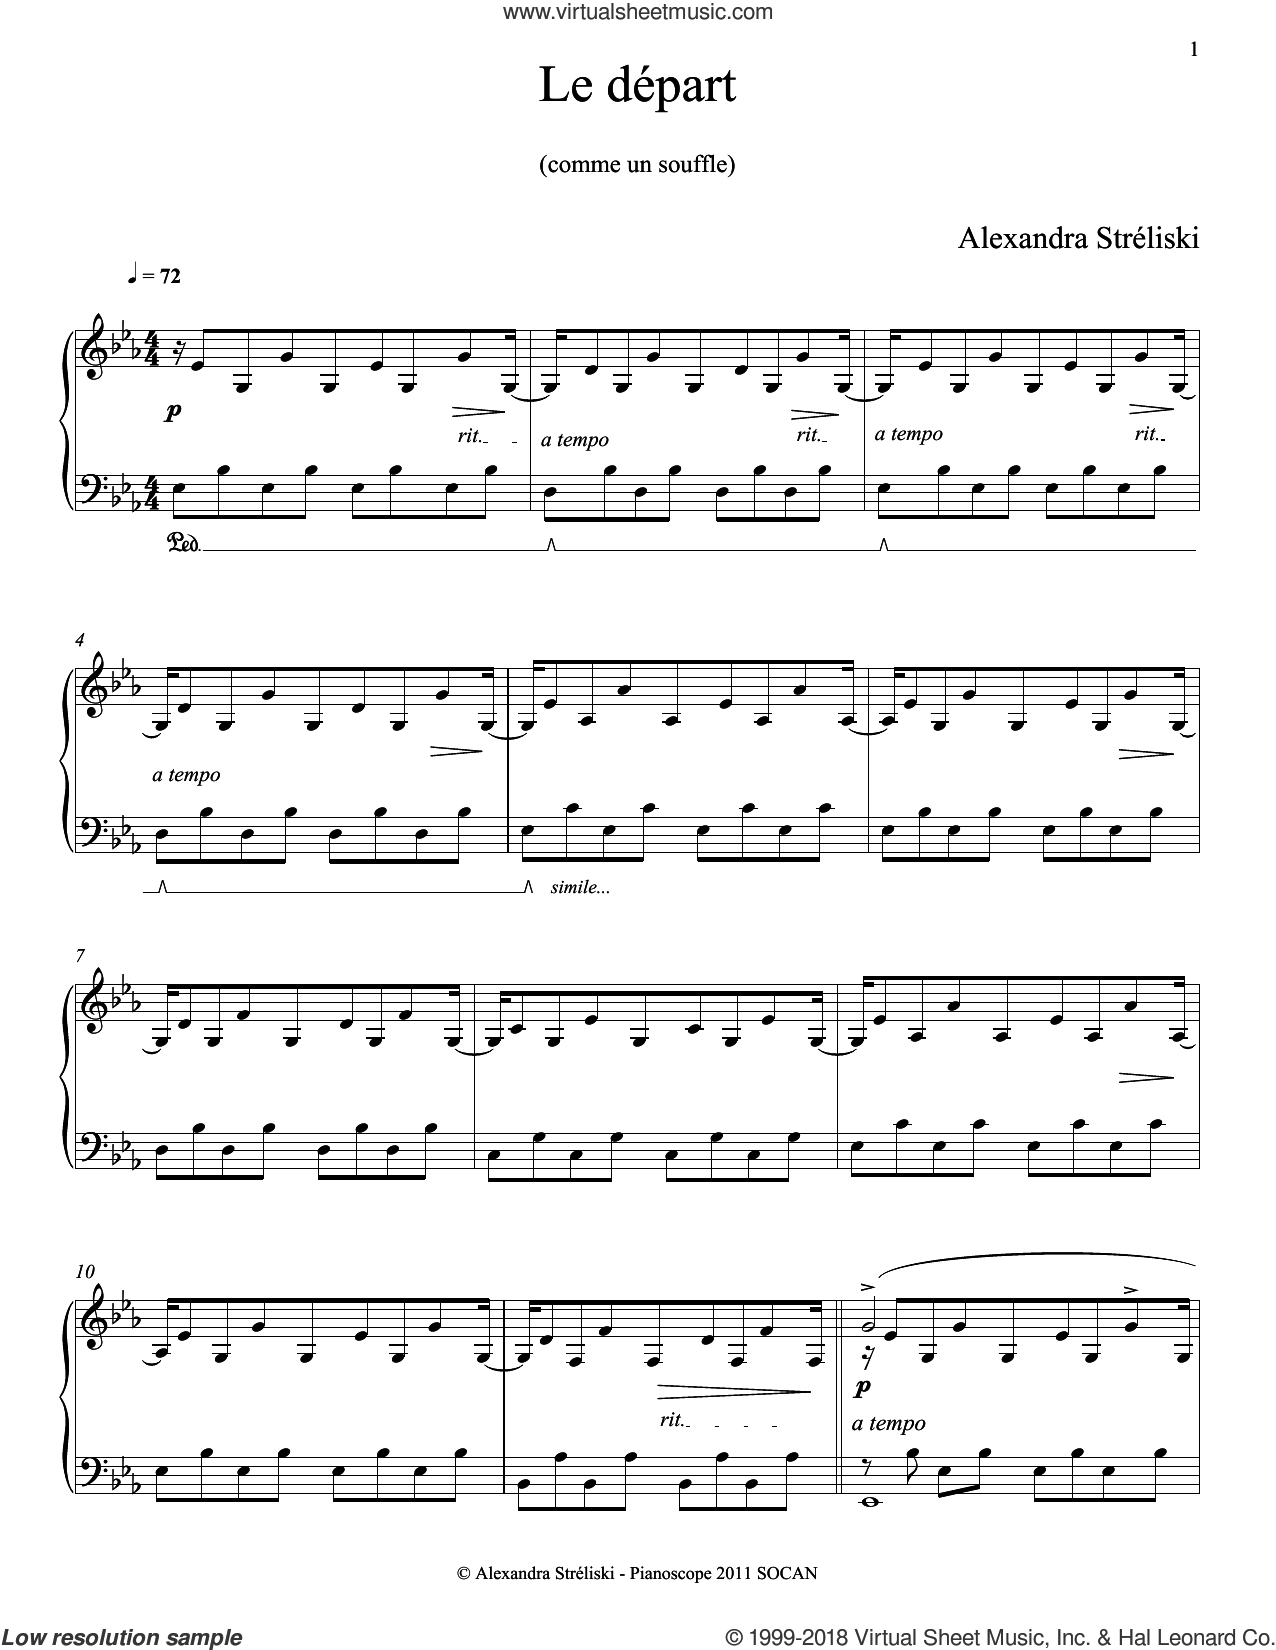 Le depart sheet music for piano solo by Alexandra Streliski, classical score, intermediate skill level